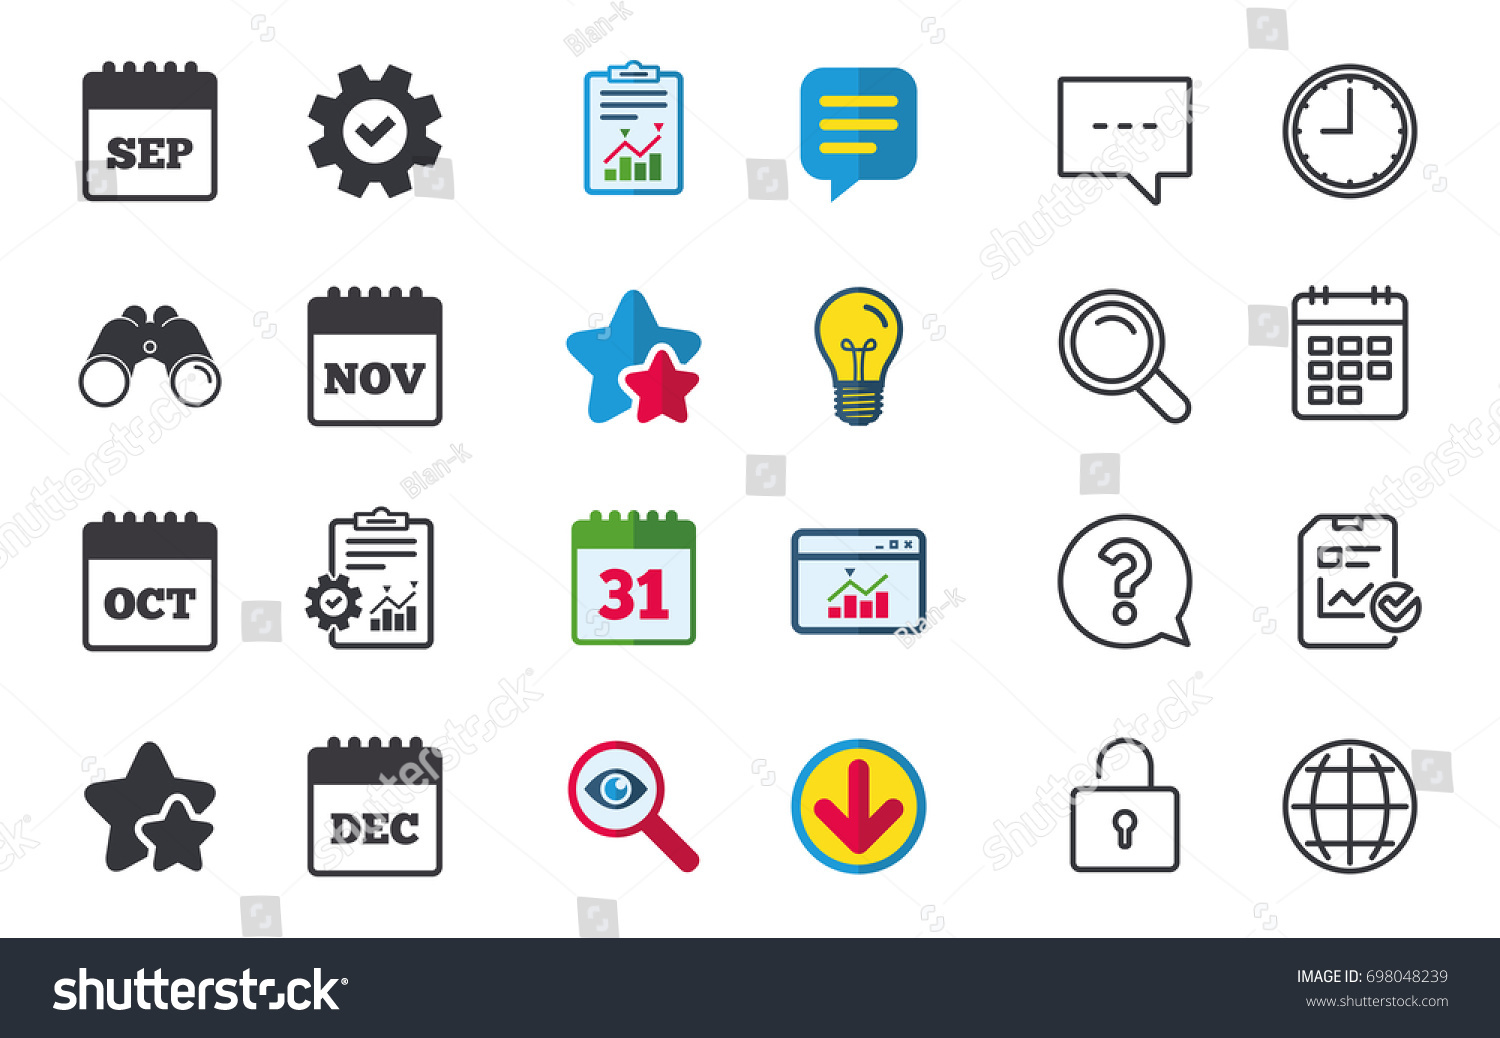 Stericycle stock symbol gallery symbol and sign ideas month signs and symbols choice image symbol and sign ideas calendar icons september november october december buycottarizona